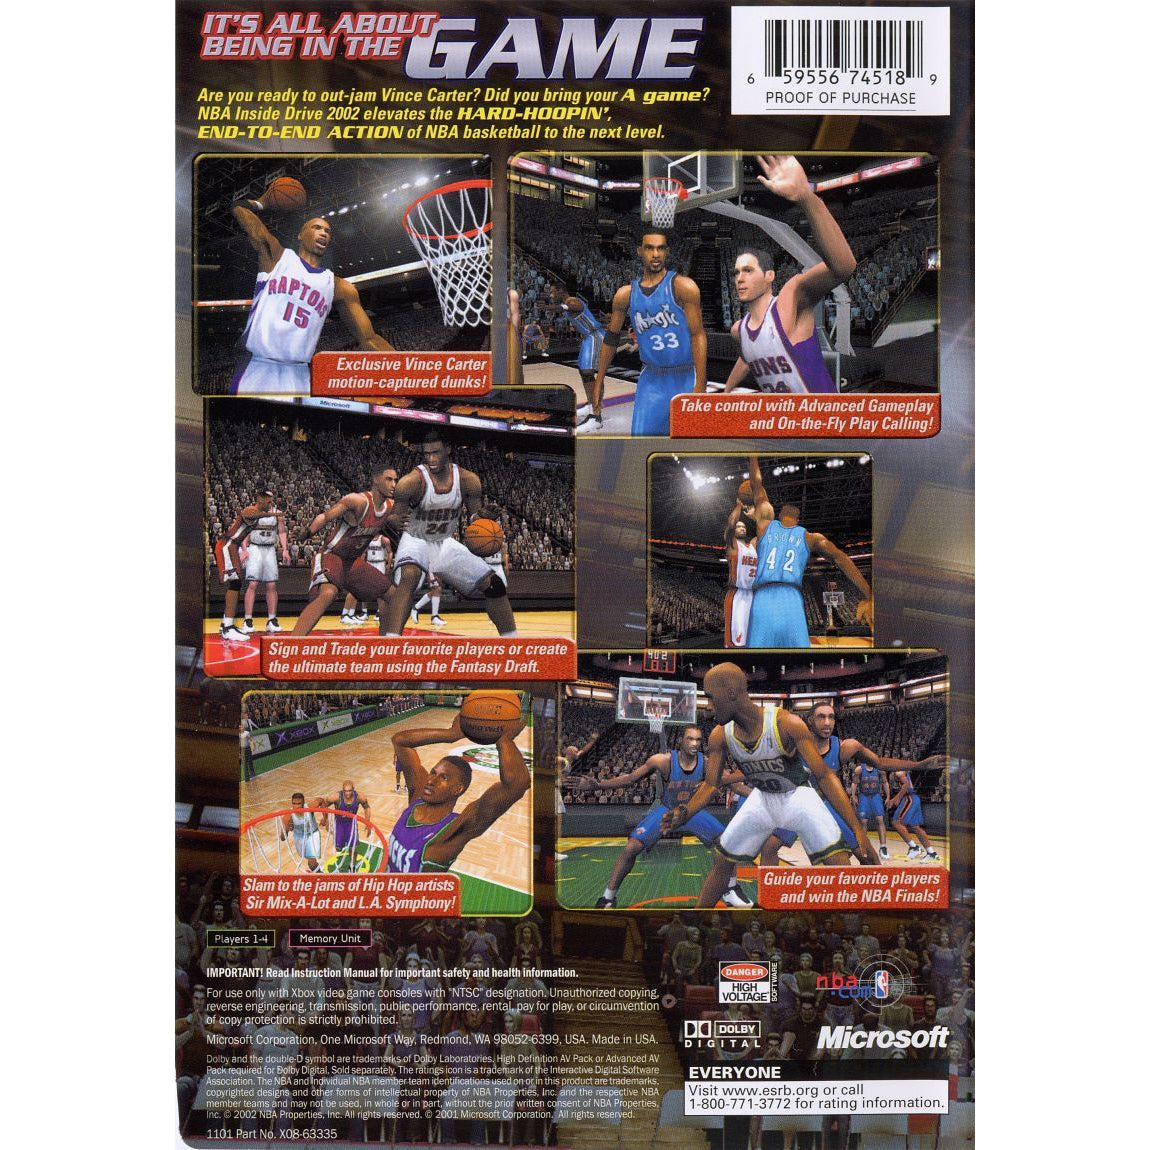 NBA Inside Drive 2002 - Microsoft Xbox Game Complete - YourGamingShop.com - Buy, Sell, Trade Video Games Online. 120 Day Warranty. Satisfaction Guaranteed.